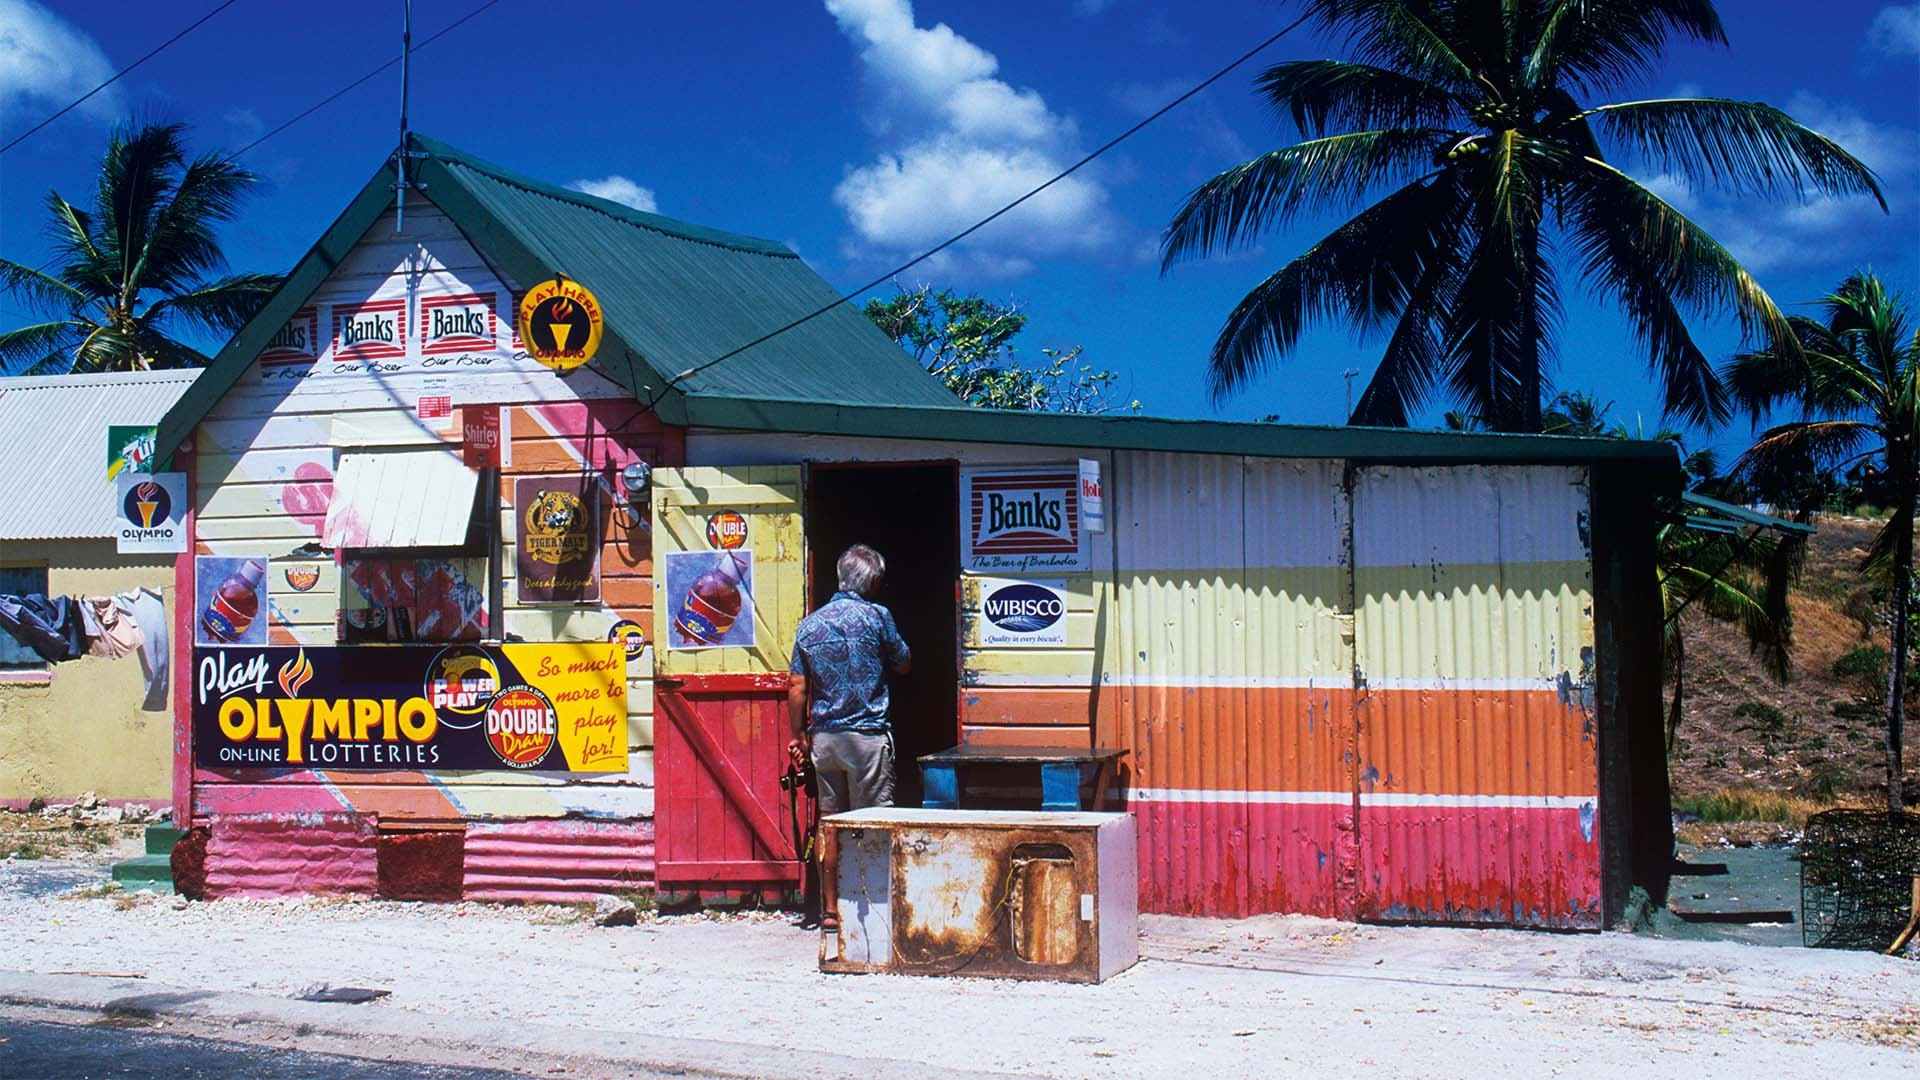 A rum in Barbados (st lucy)